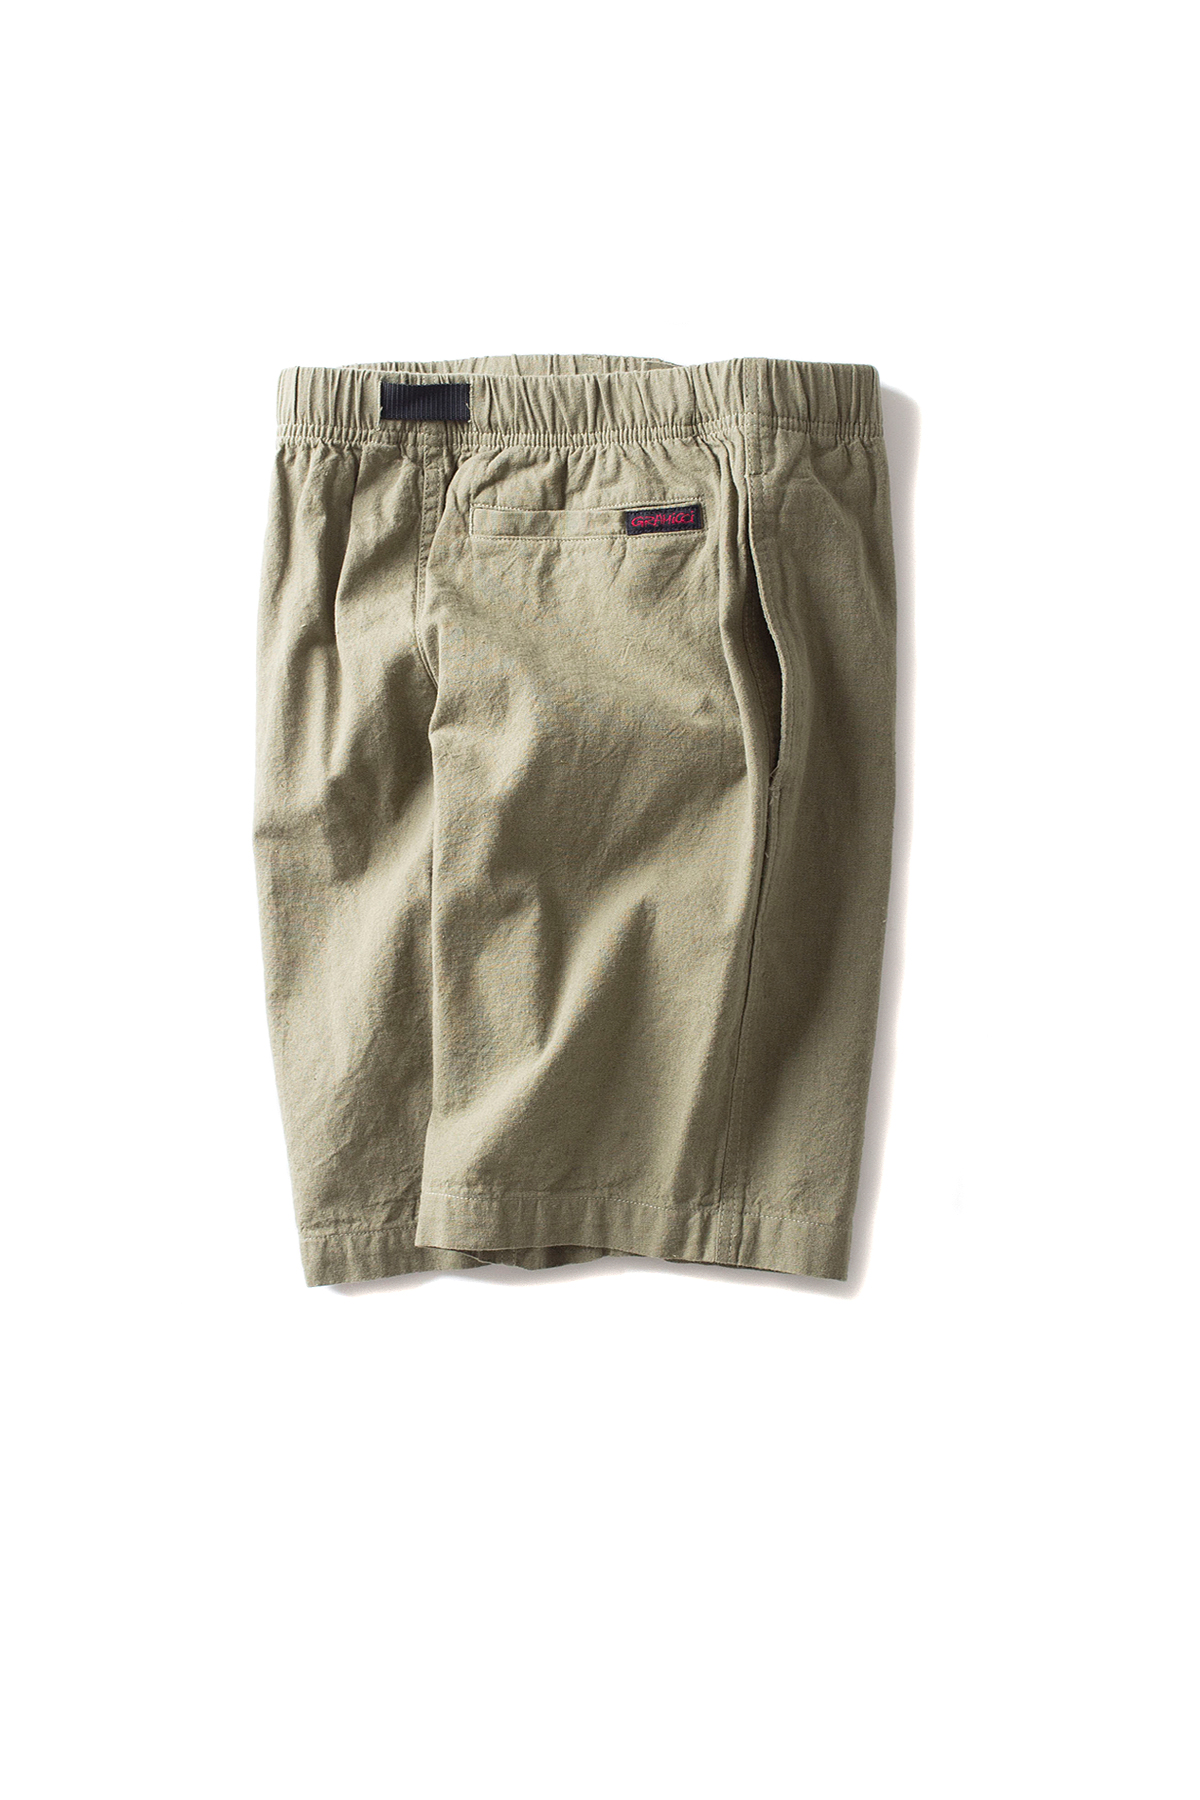 Gramicci : Cotton-Linen Zipper Shorts (Olive)